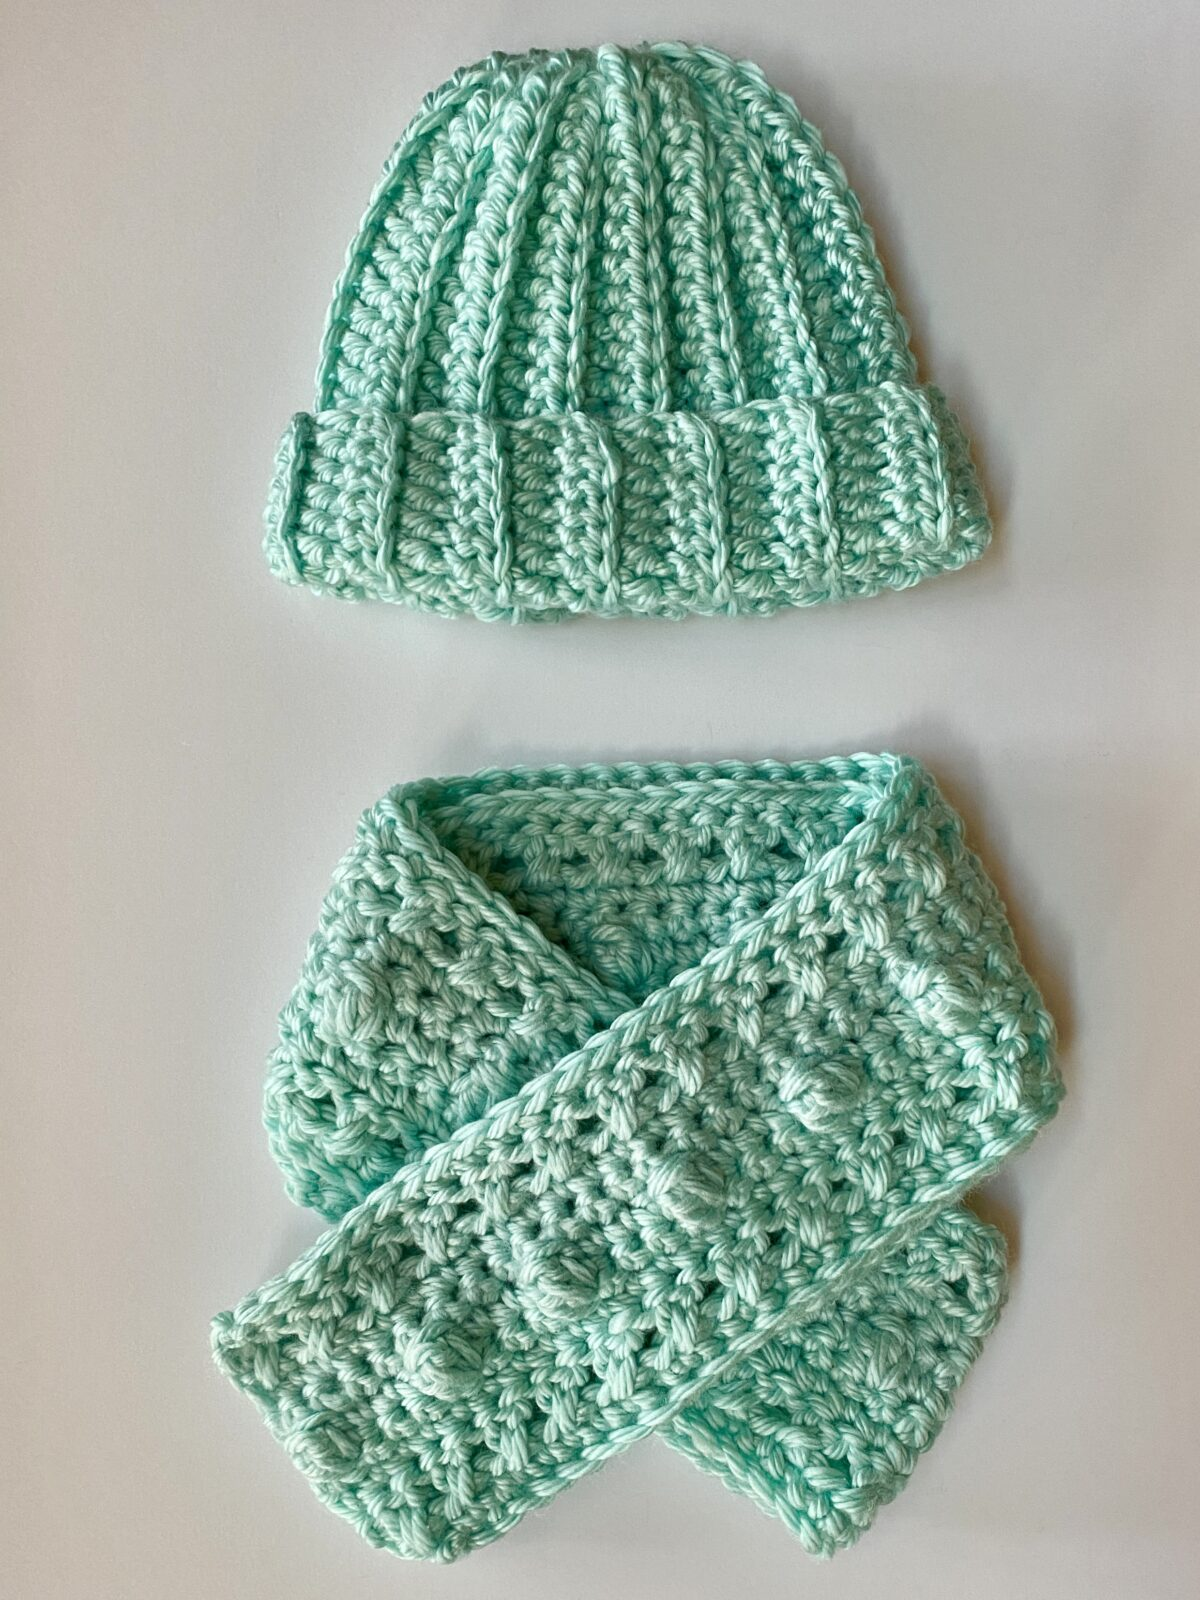 How to Crochet an Adult Beanie and Scarf